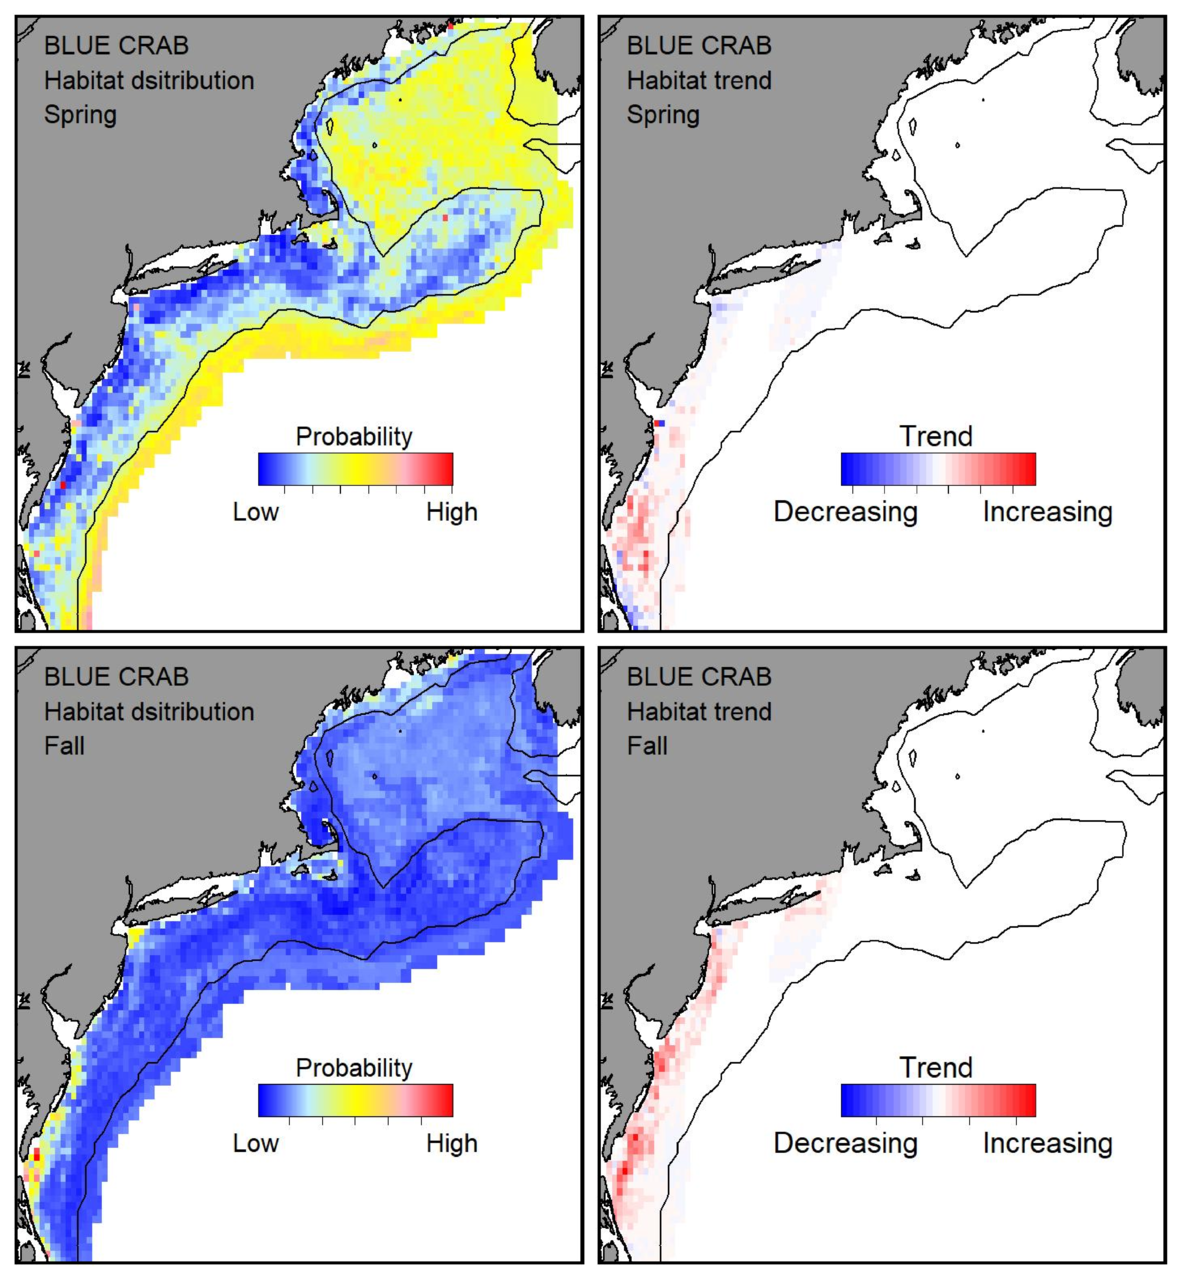 Probable habitat distribution for blue crab showing the highest concentration and increasing trend in the Gulf of Maine during the spring. Bottom row: Probable habitat distribution for blue crab showing the highest concentration and increasing trend in the Gulf of Maine during the fall.